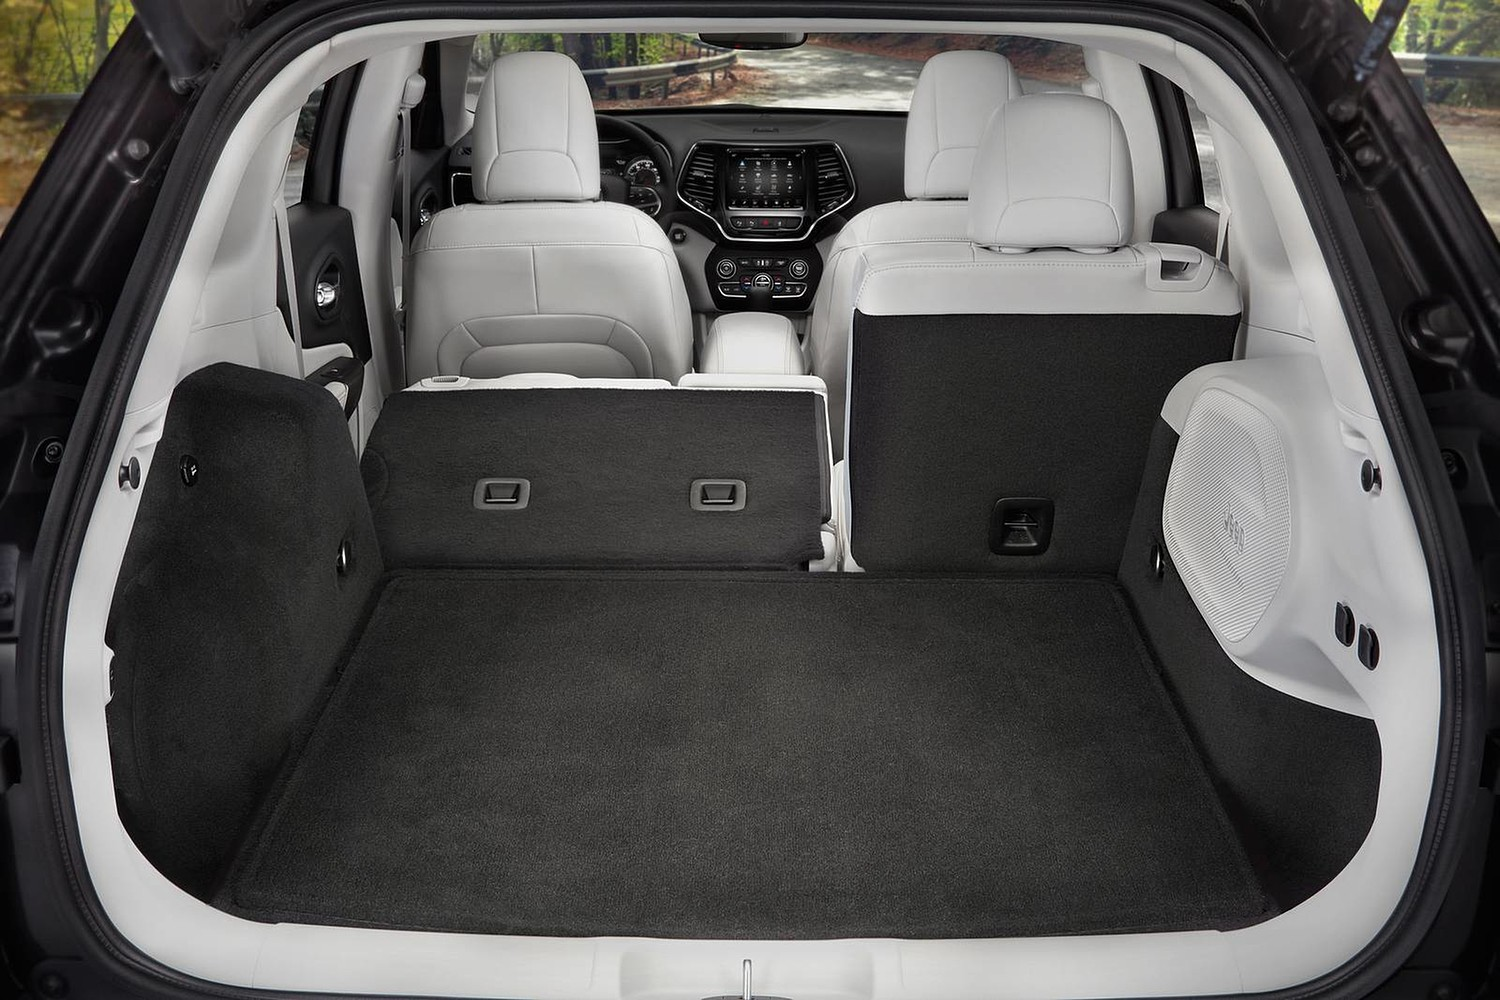 2019 Jeep Cherokee Limited 4dr SUV Rear Seats Down